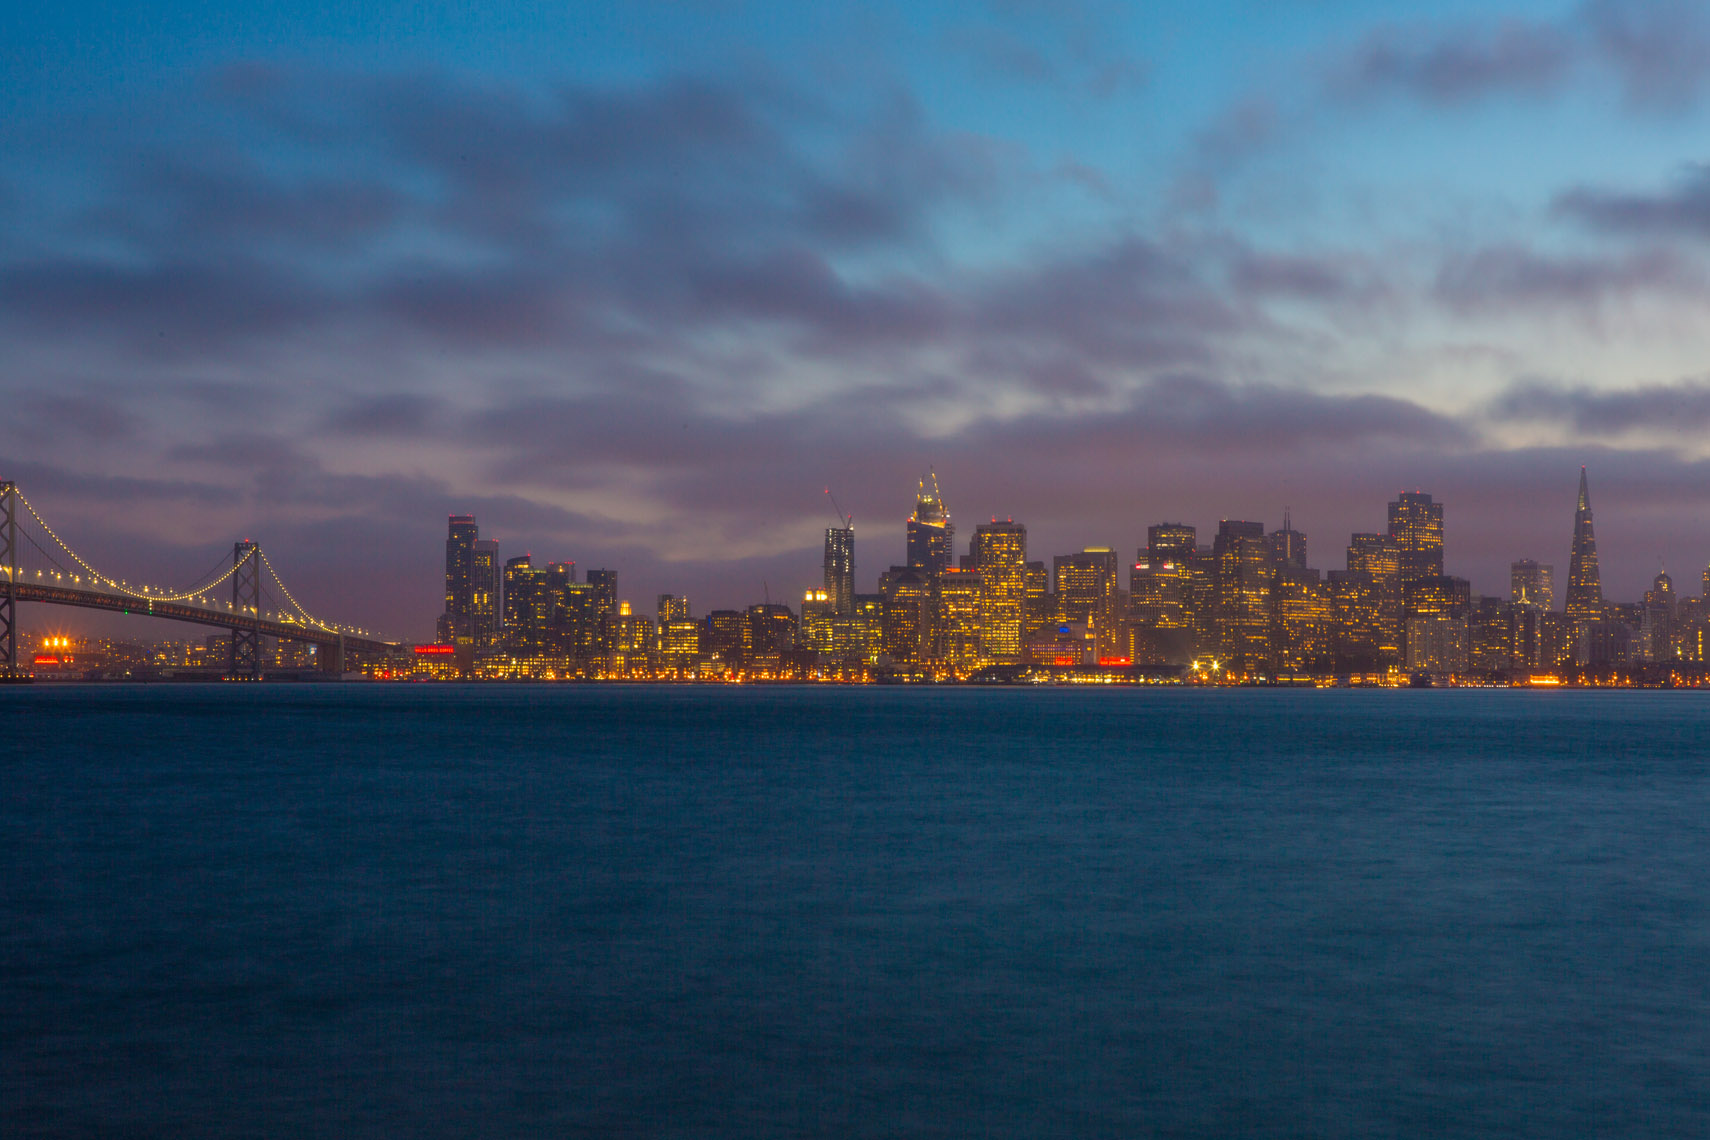 08_Kris_Davidson_Lonely_PLanet_San_Francisco_Skyline